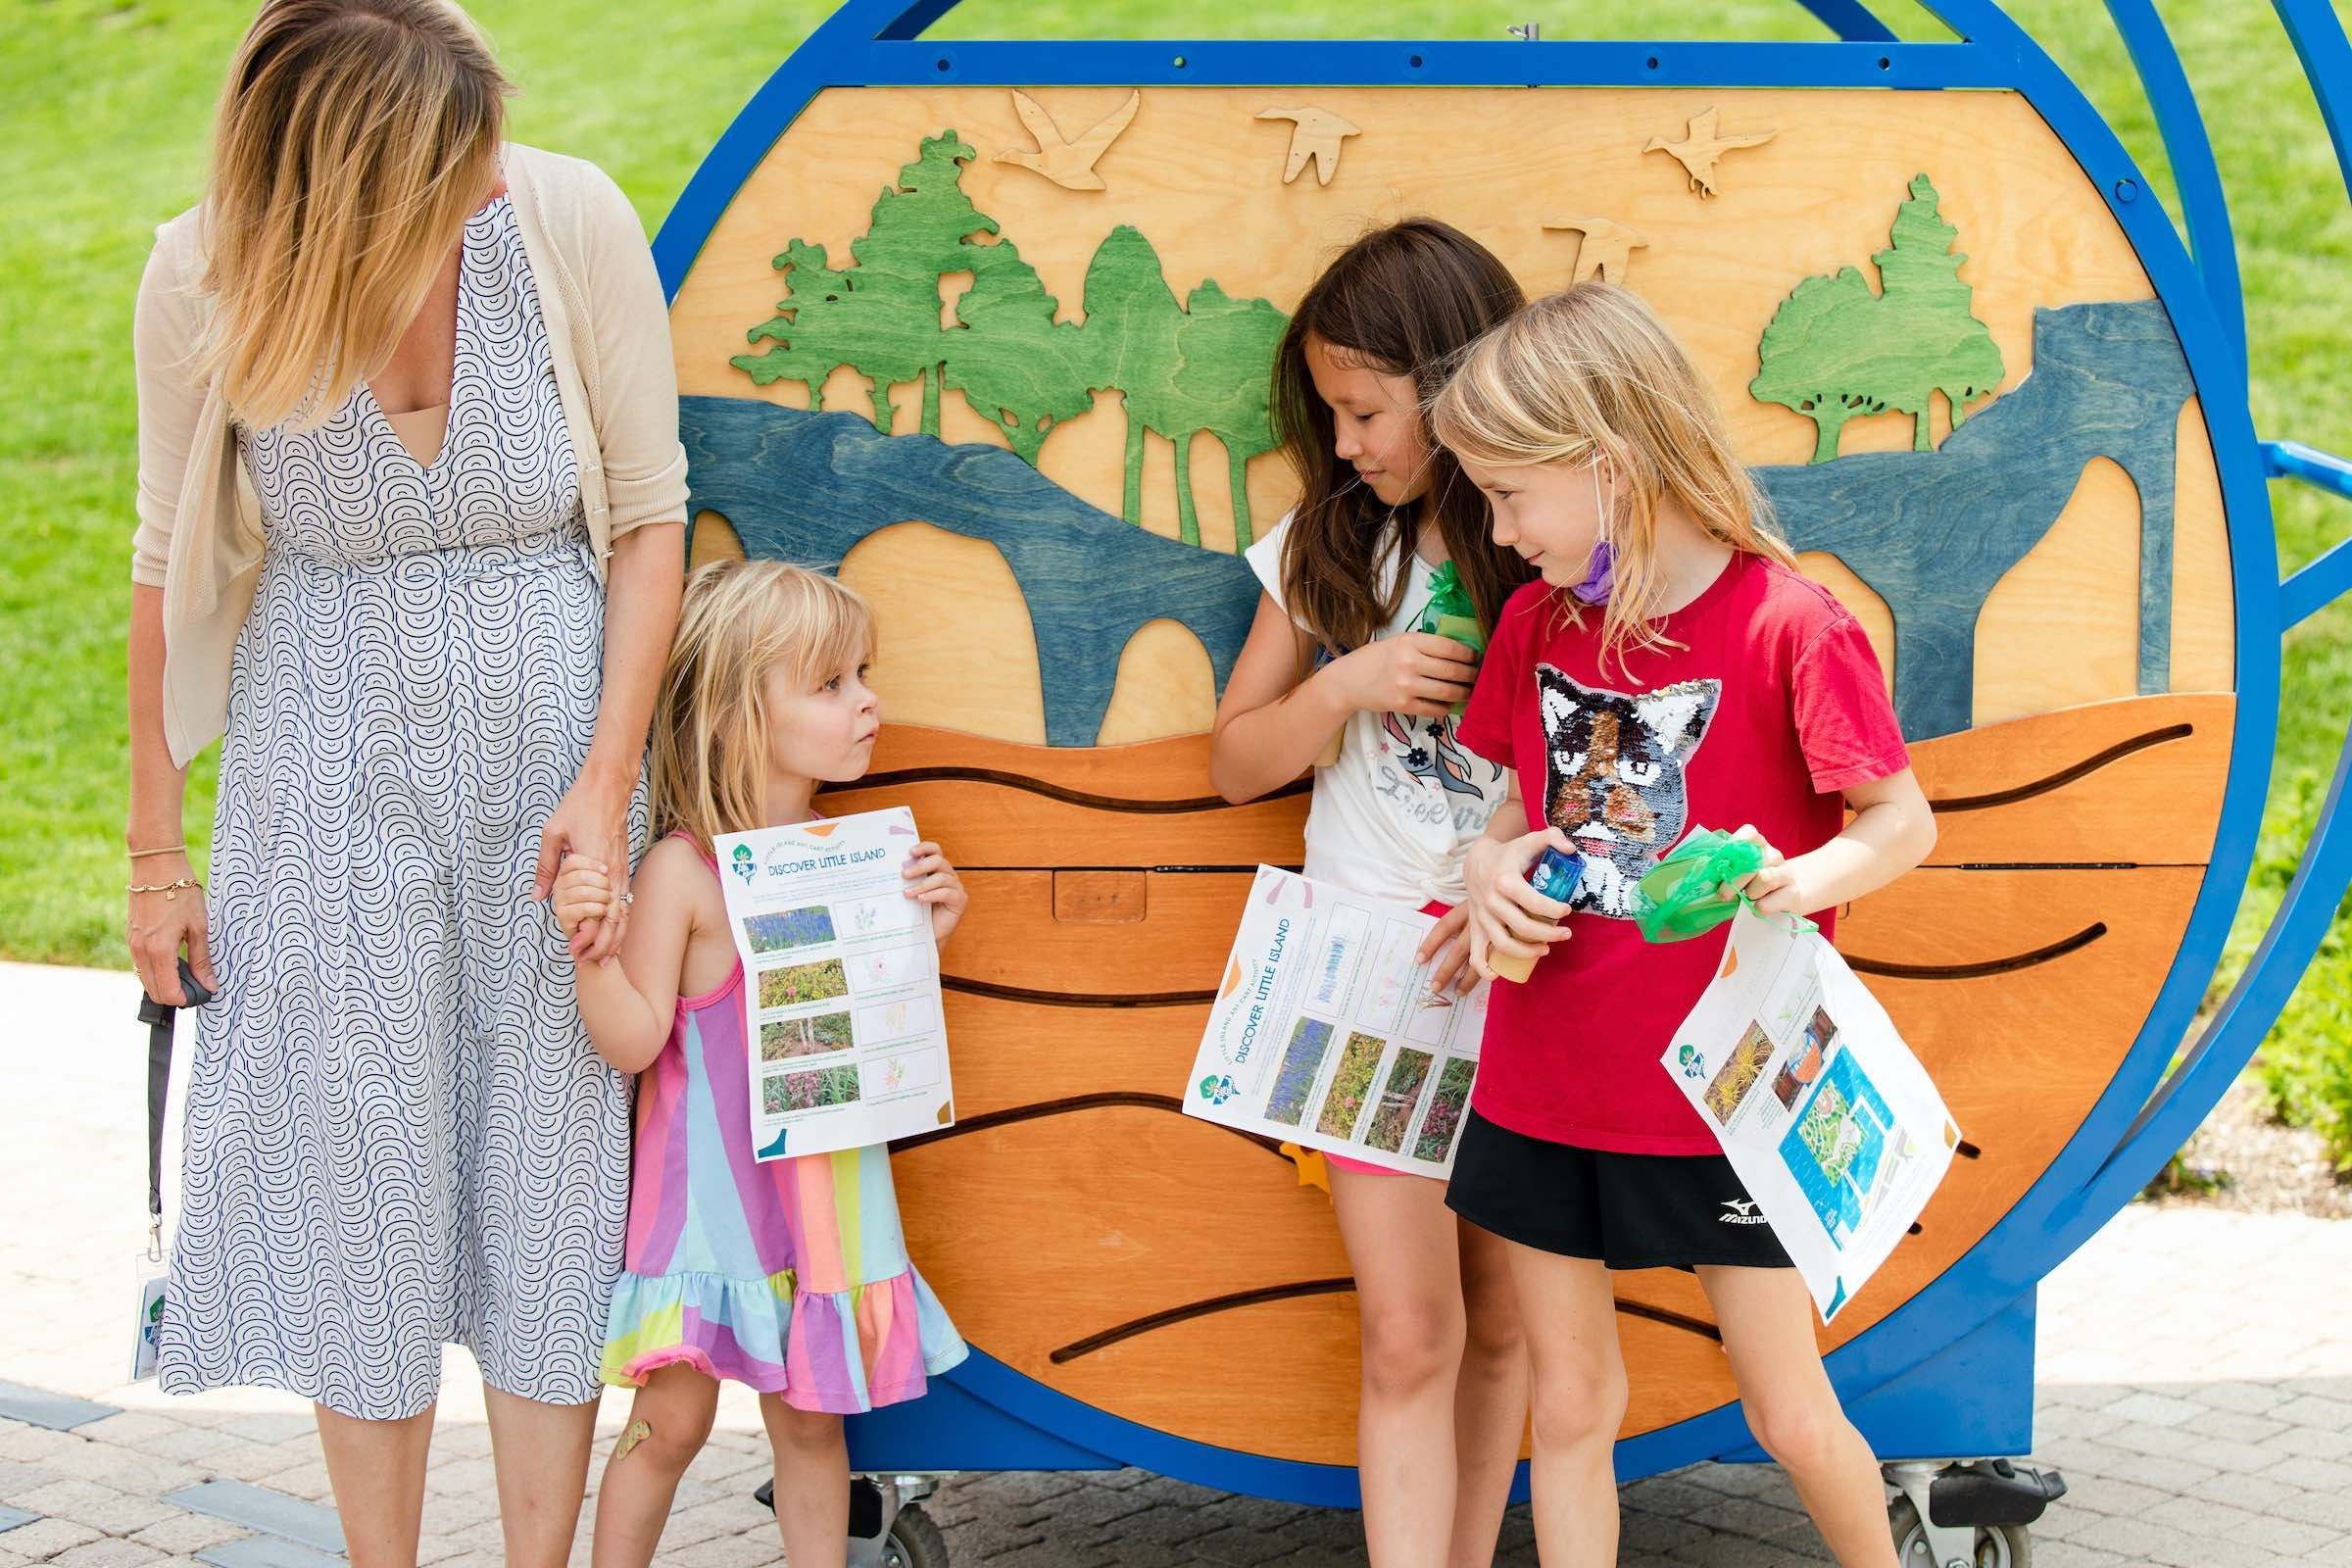 Three children and an adult standing in front of the Little Island Art Cart, holding Little Island activity sheets